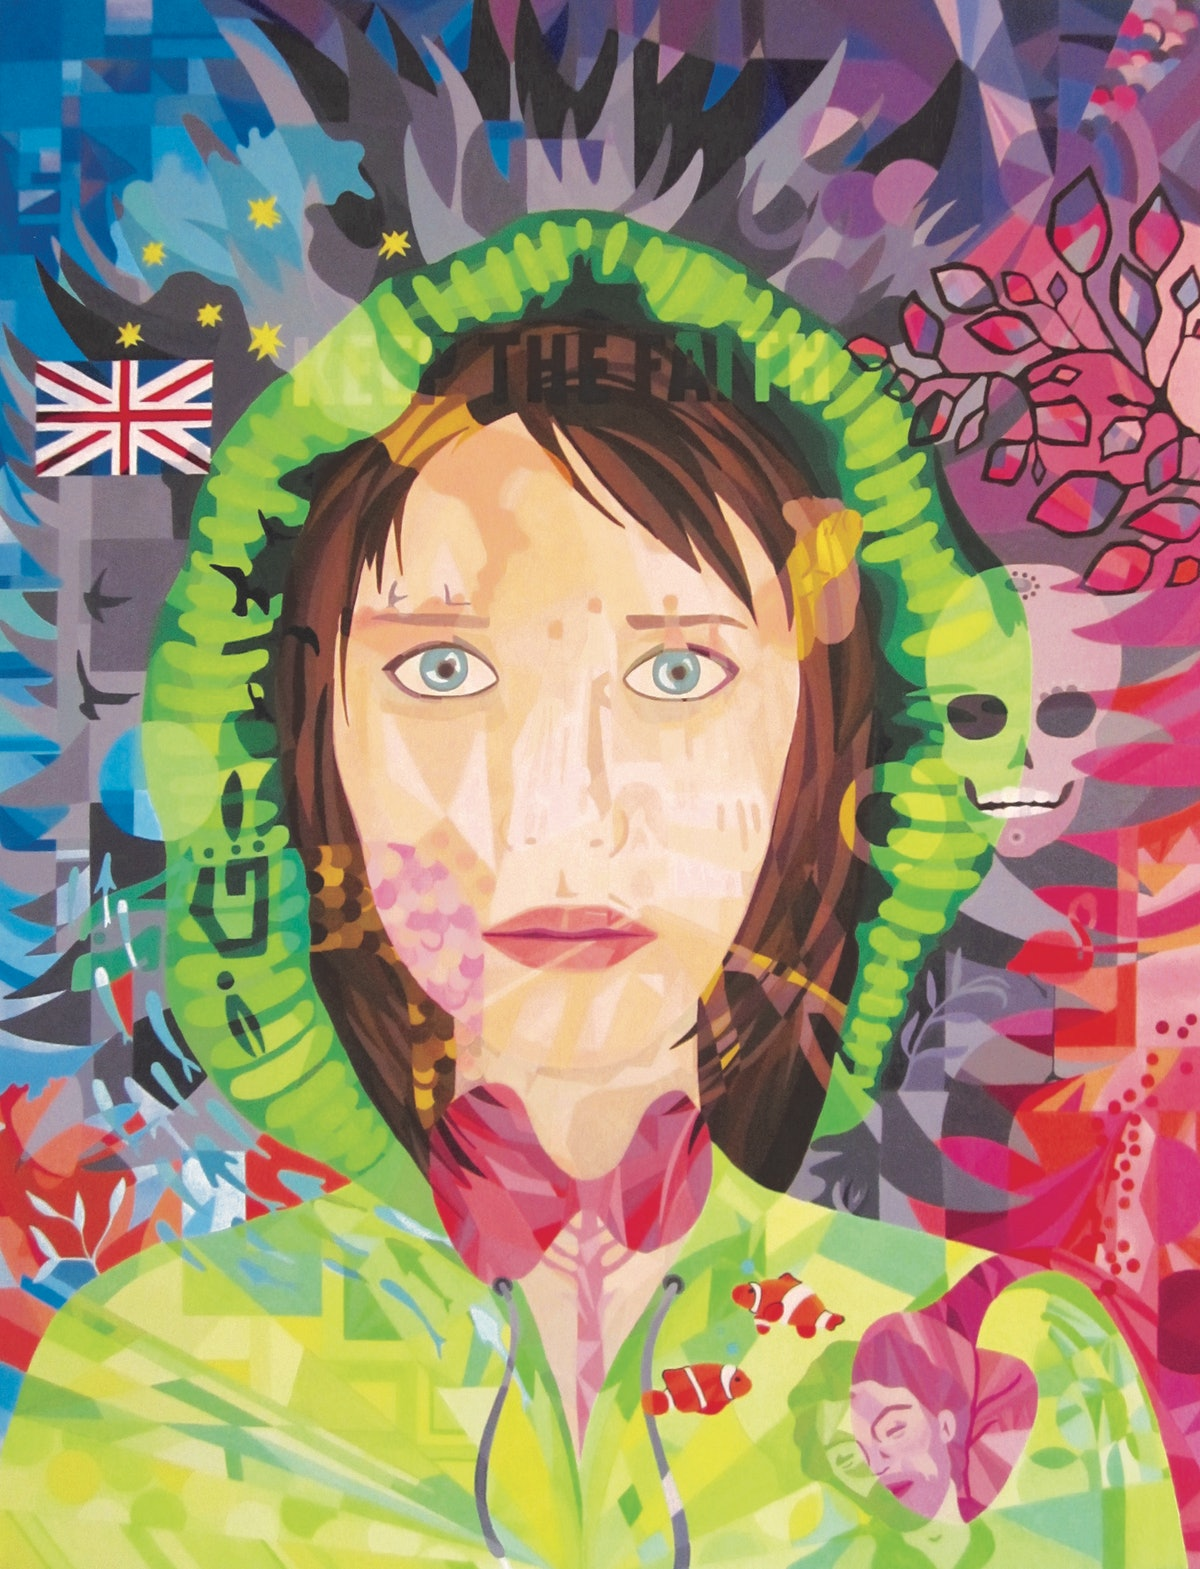 Lourdes Villagomez's self portrait, a semi-abstract image of a woman with blue eyes and brown hair, wearing a green hoodie on a blue and red background surrounded by superimposed images of fish, skulls, human organs, human faces, trees, leaves, and more.